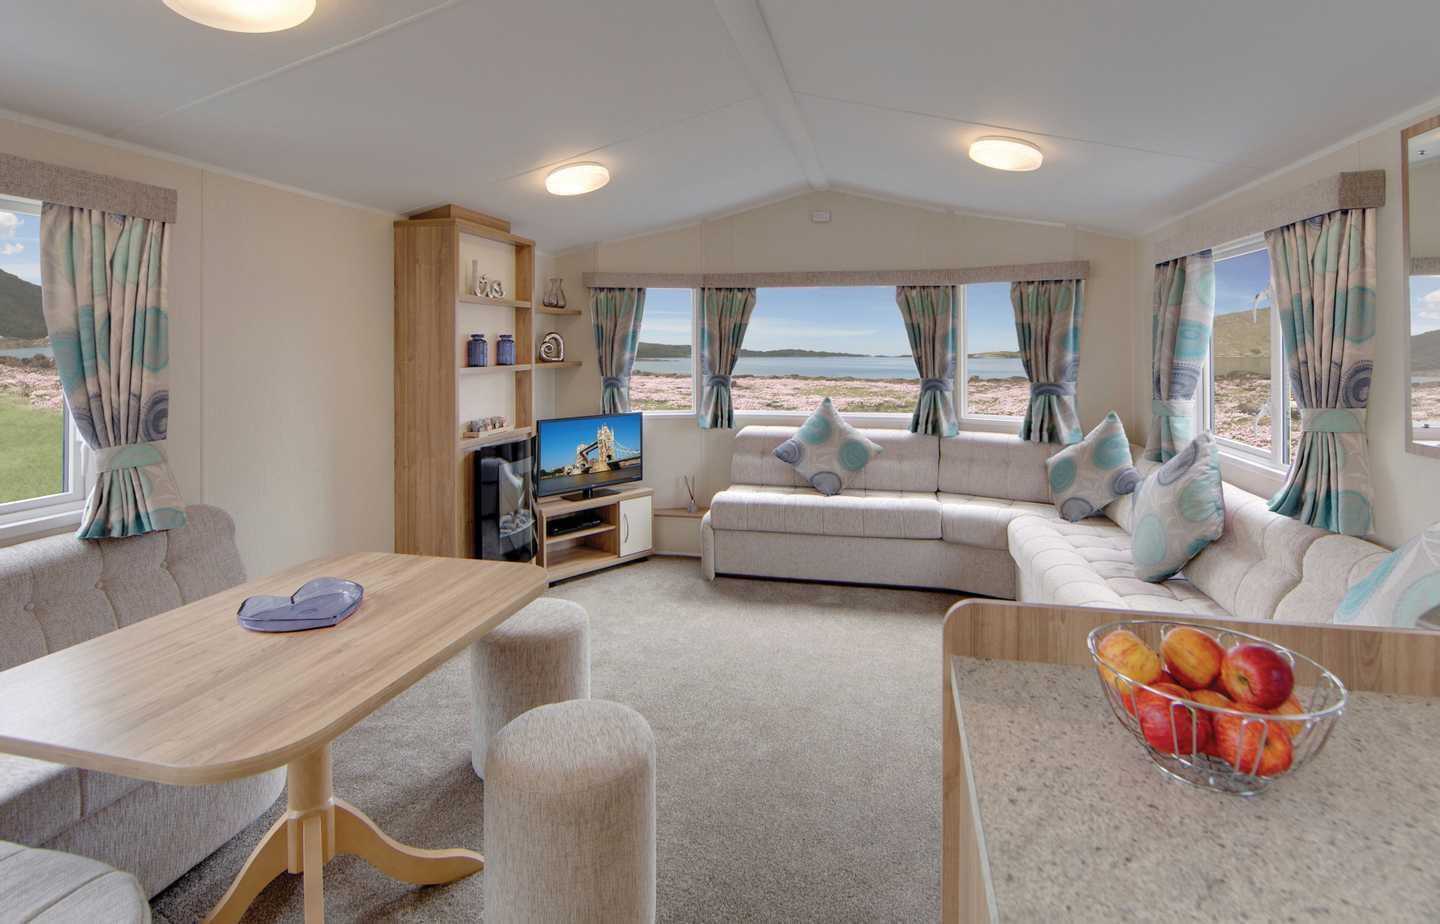 Interior of a Willerby Rio Gold static caravan